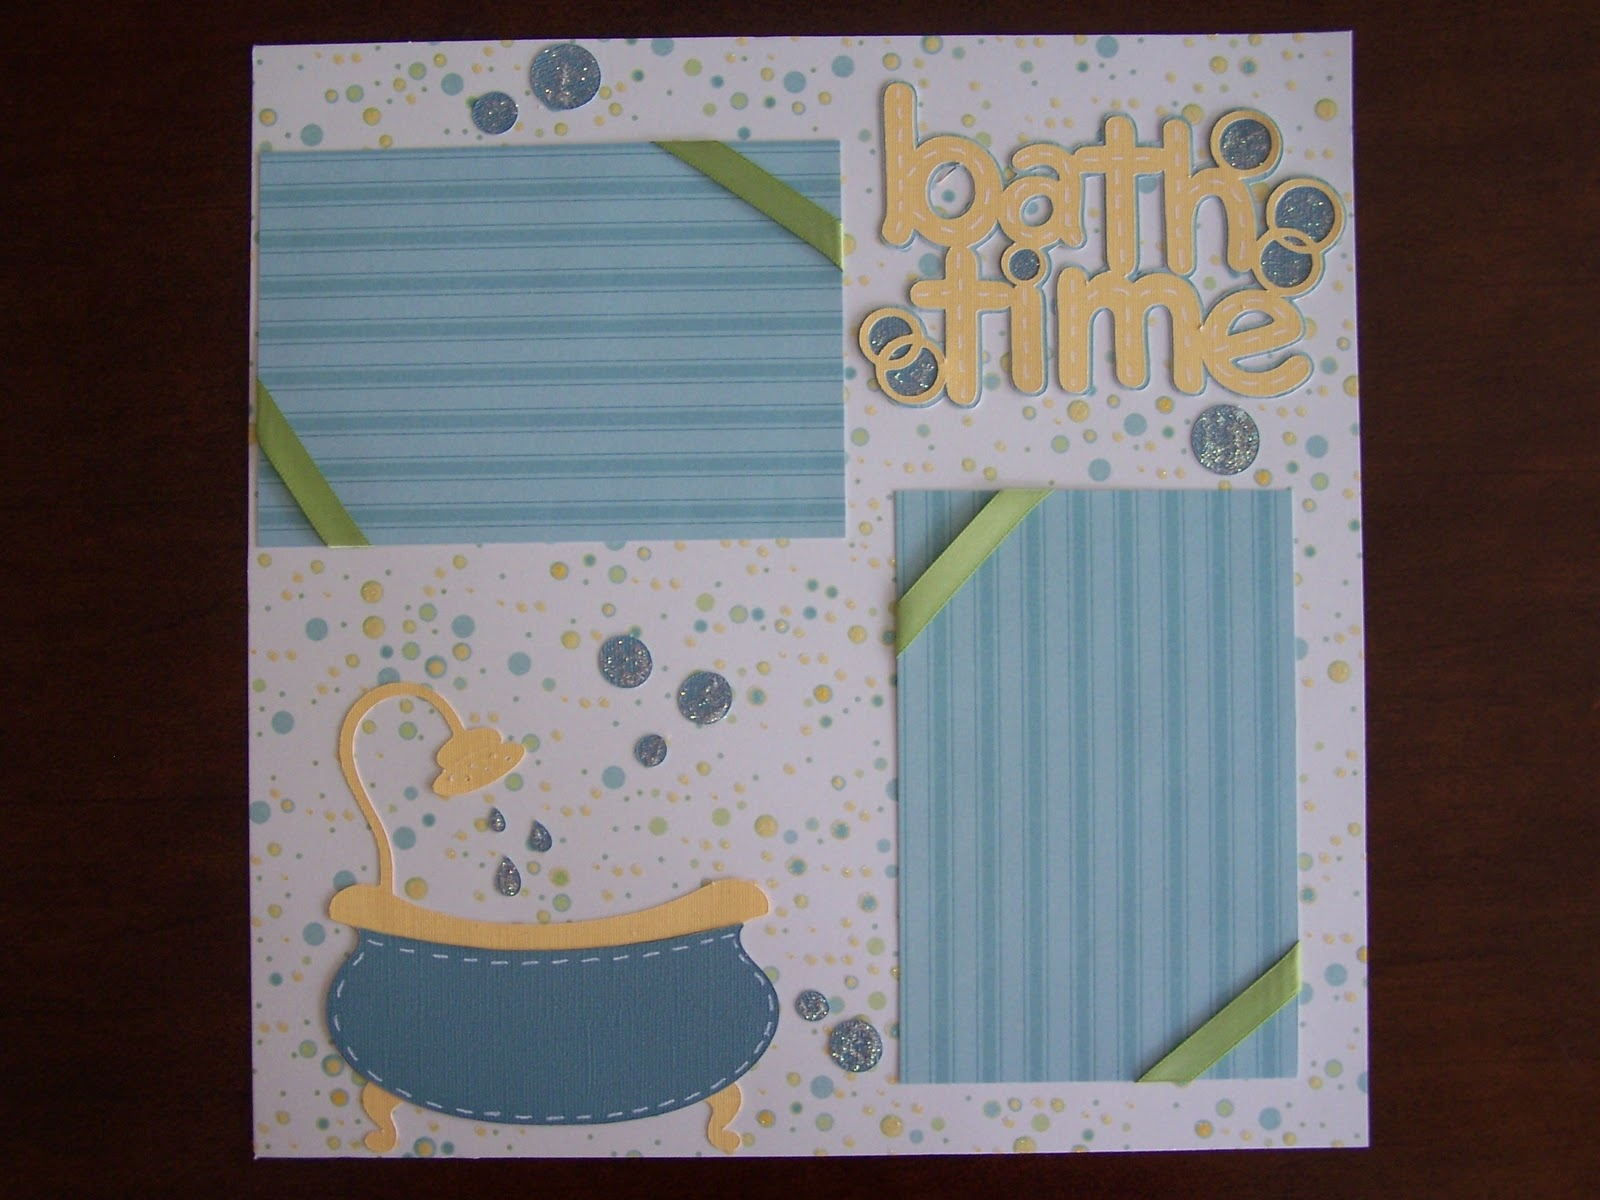 Scrapbook ideas without photos - I Used New Arrival For This Sweet Little Bathtub Cut At 5 Inches